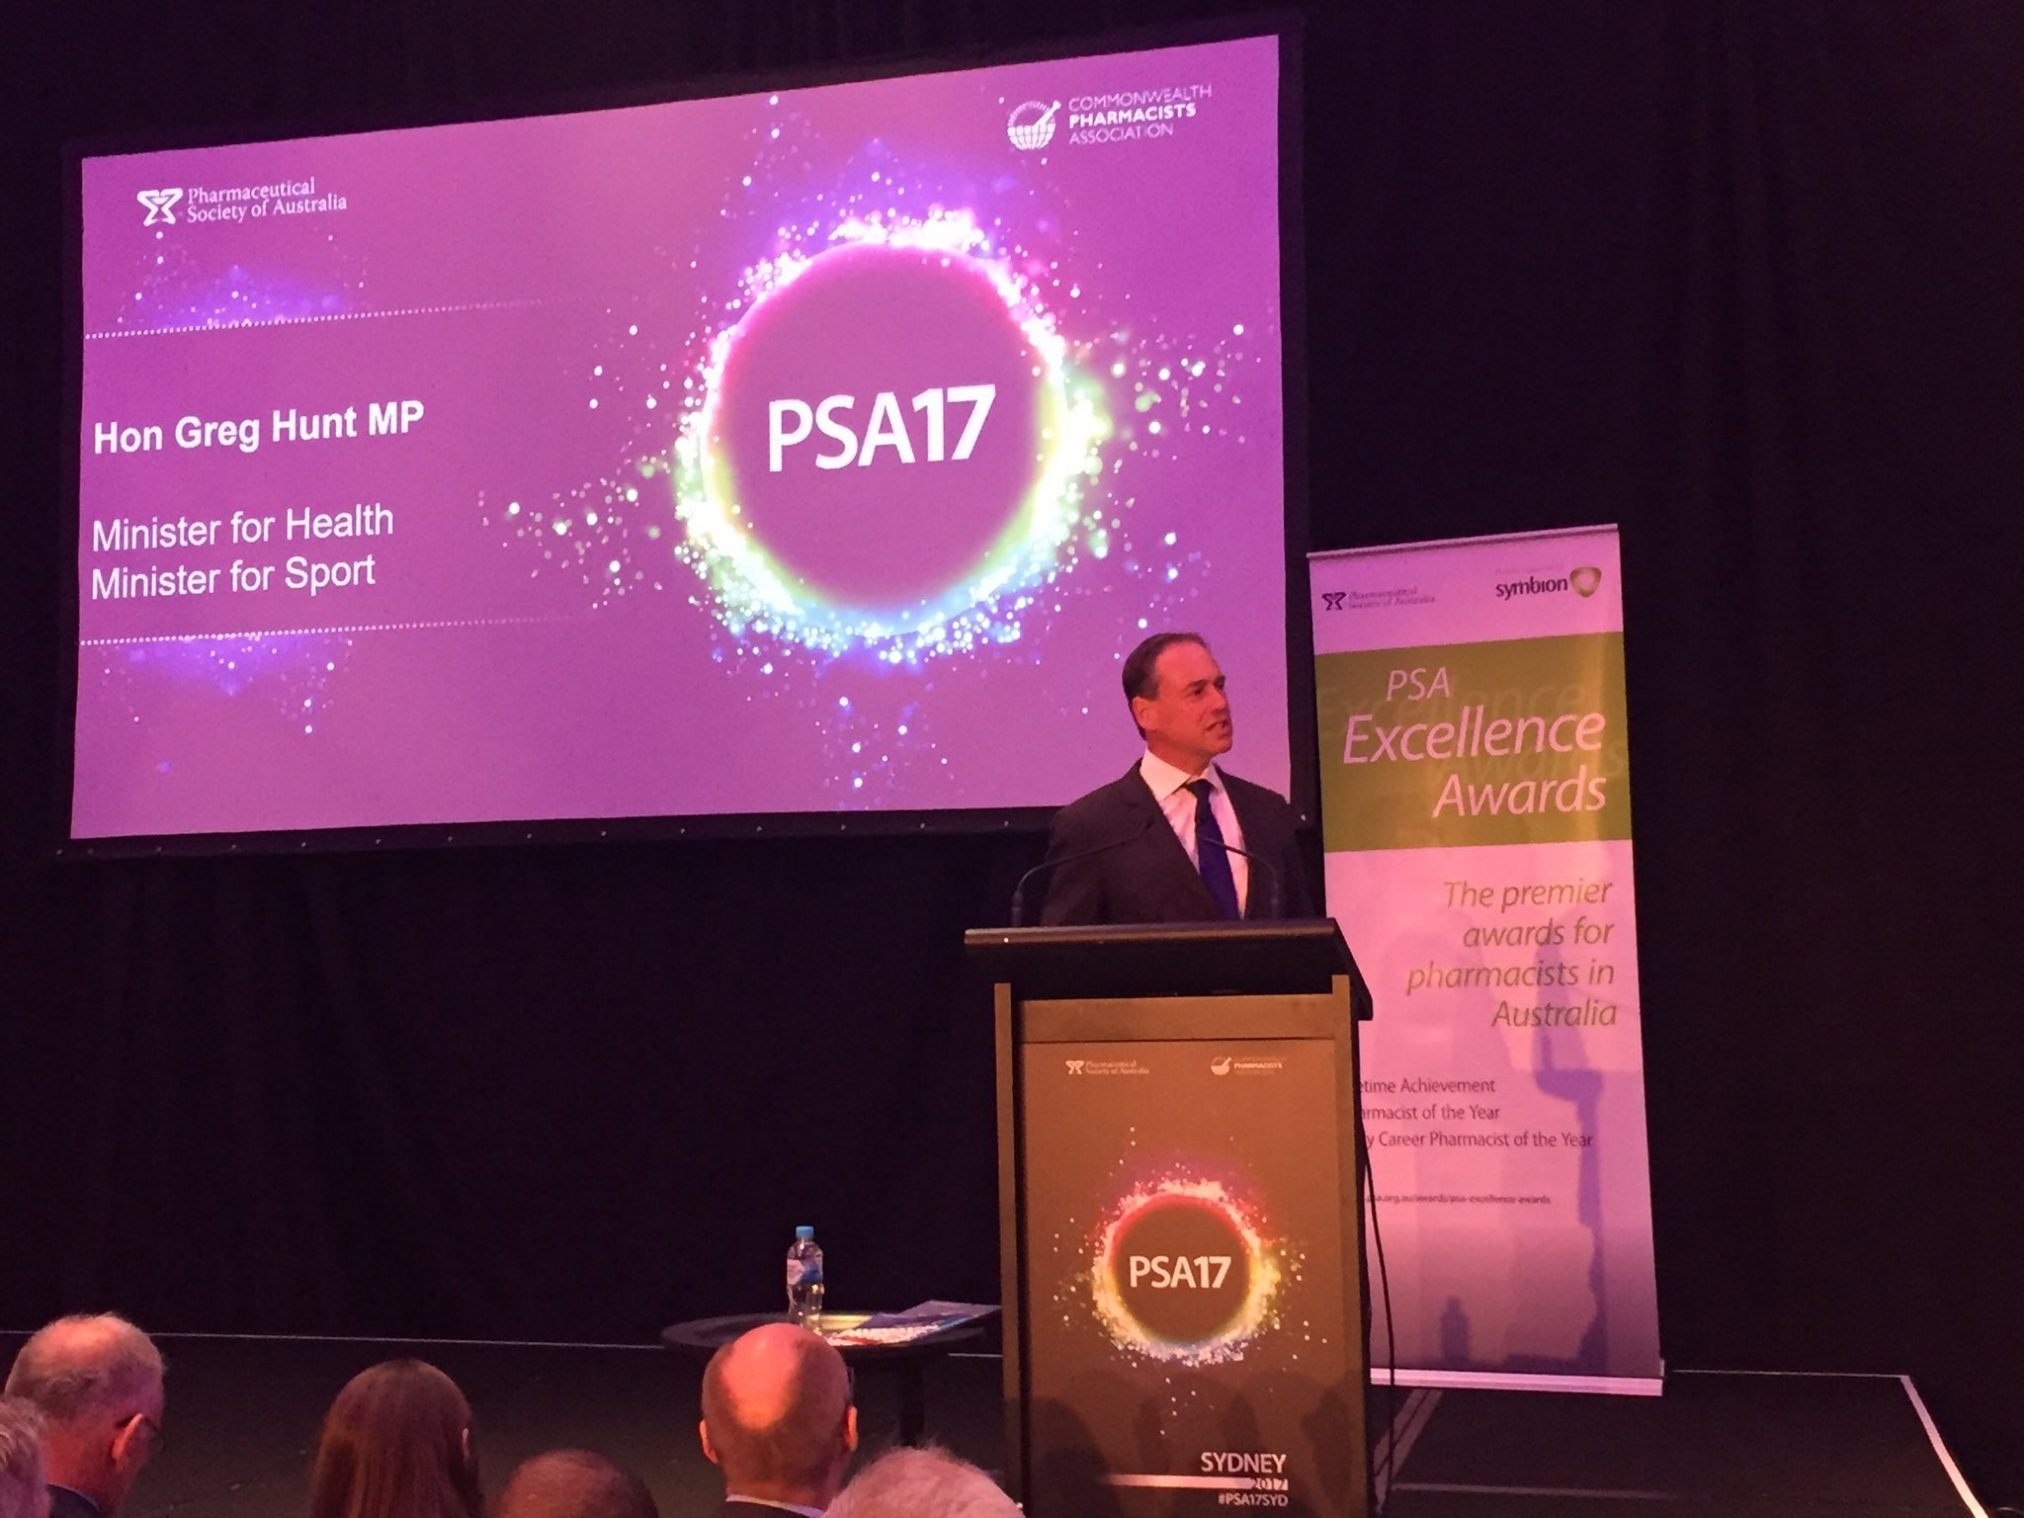 Greg Hunt speaks at PSA17. Image: PSA